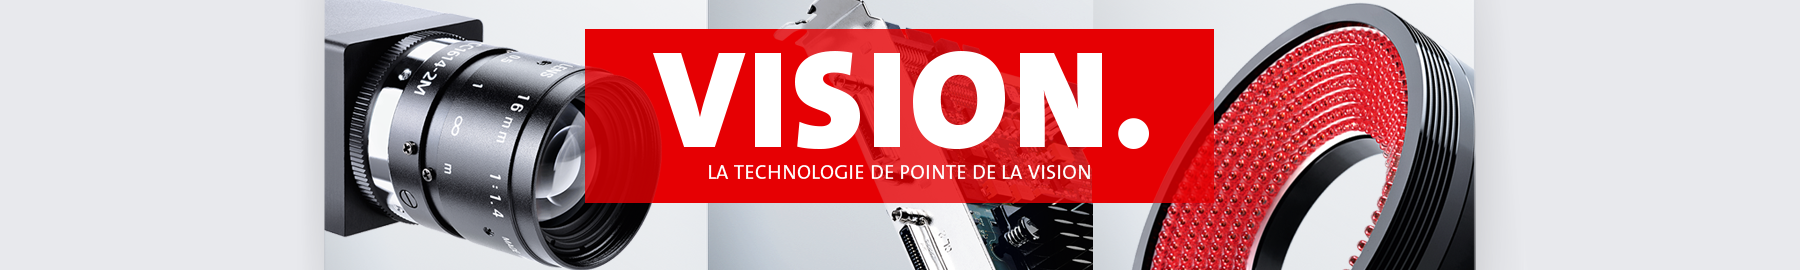 Soci t stemmer imaging for Salon vision industrielle